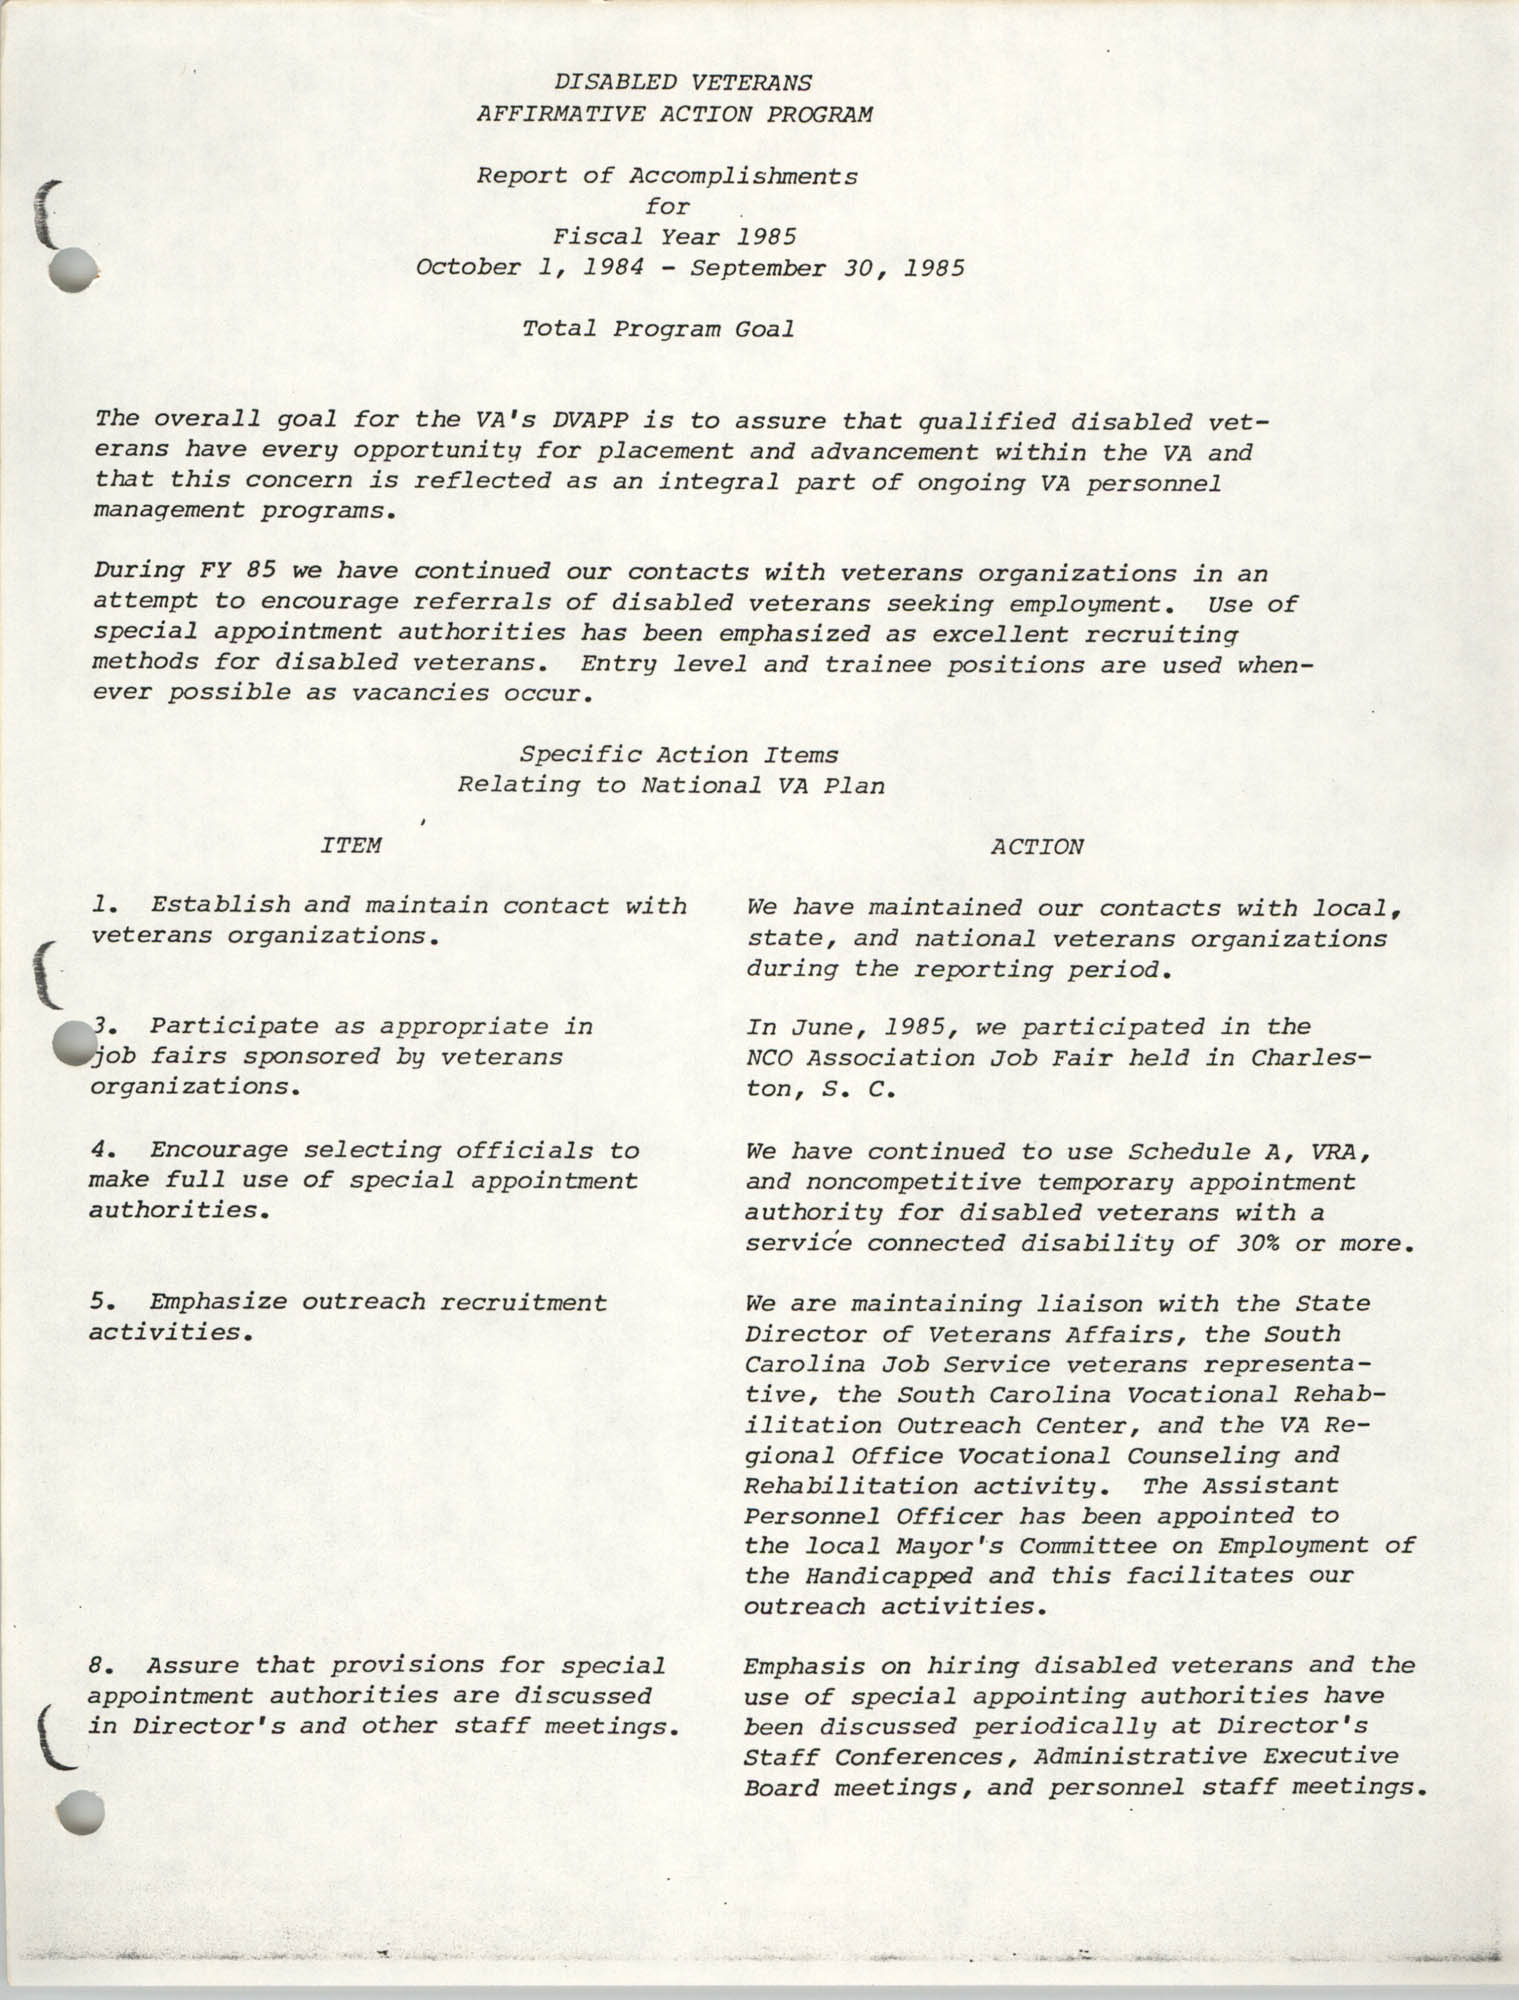 Disabled Veterans Affirmative Action Program, Report of Accomplishments for Fiscal Year 1985, Total Program Goal